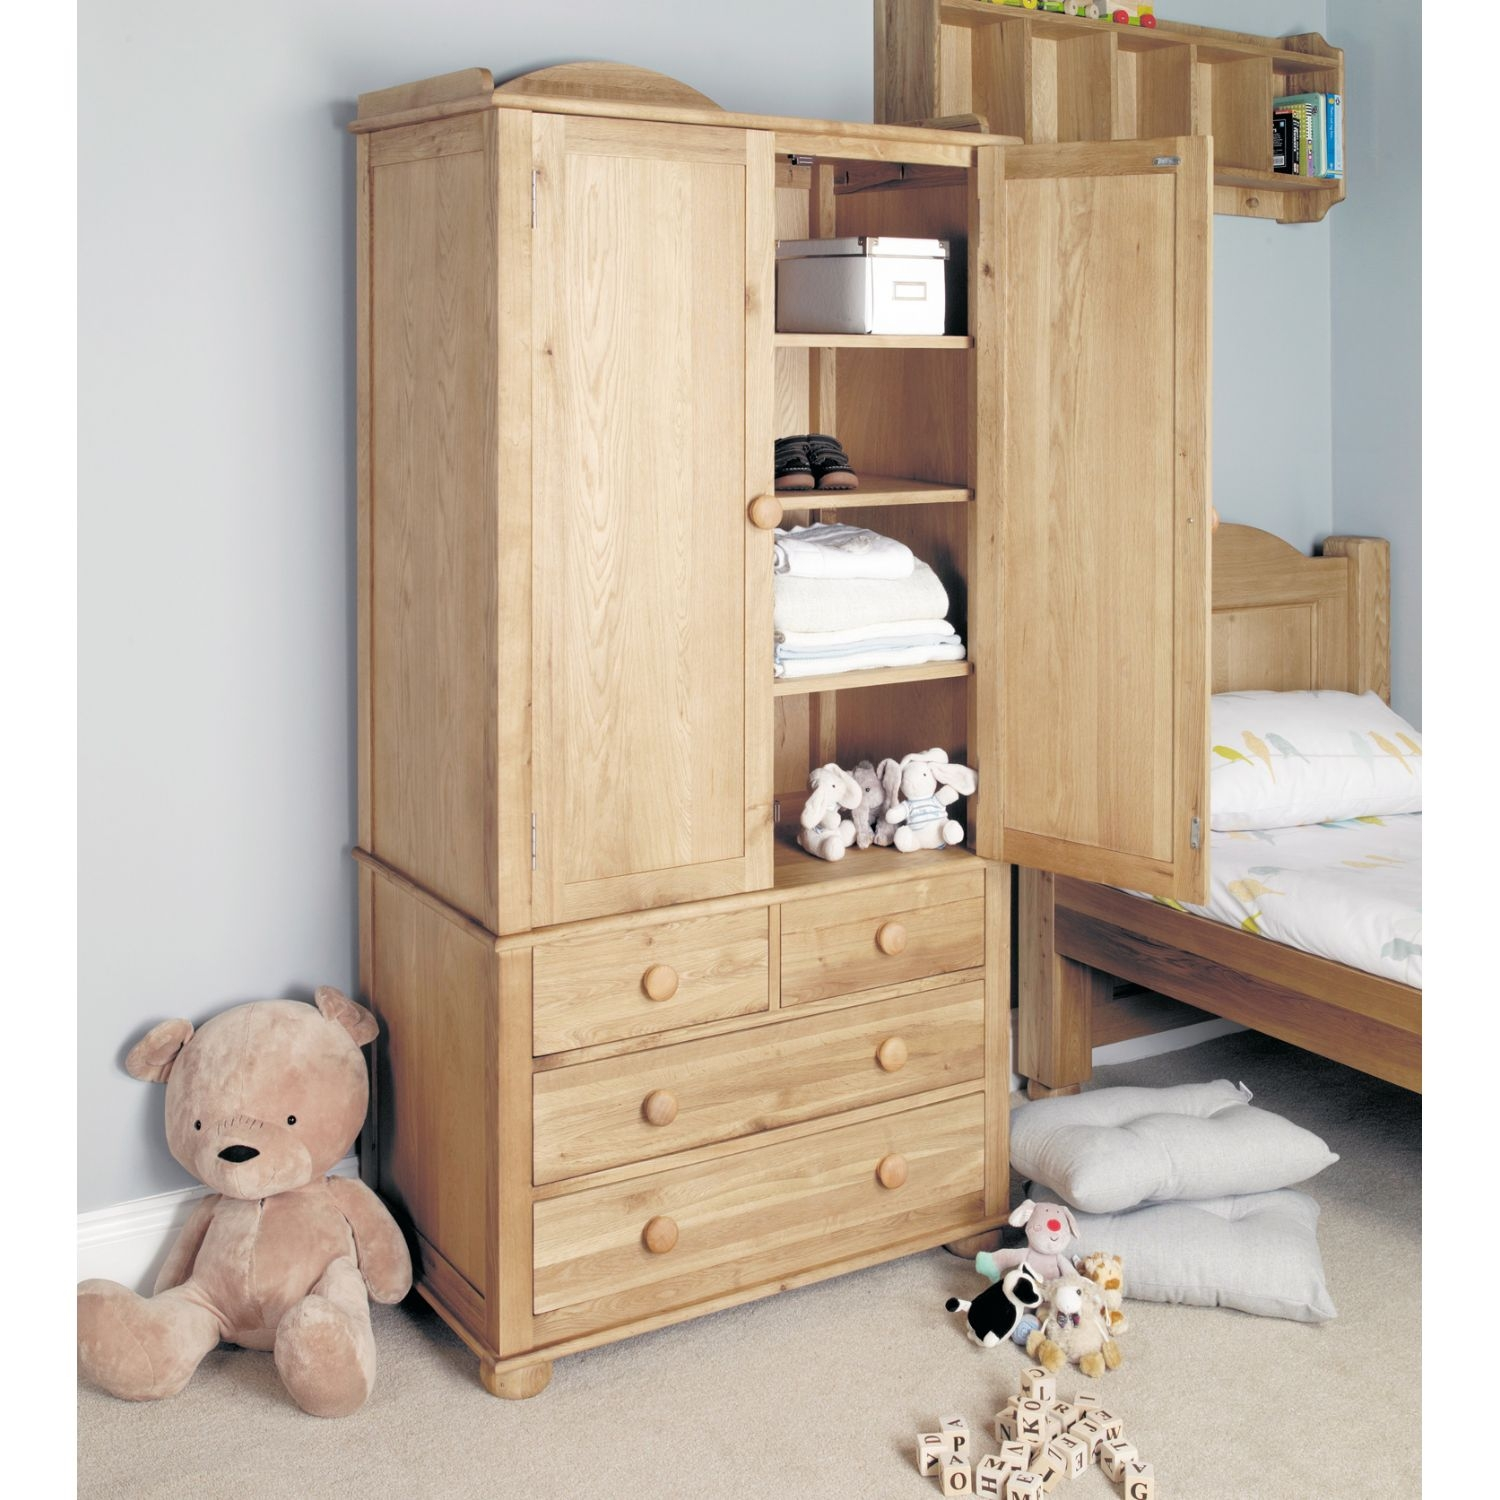 Childrens Wardrobes With Shelves Awesome Interior Inside Wardrobe With Shelves And Drawers (Image 6 of 15)